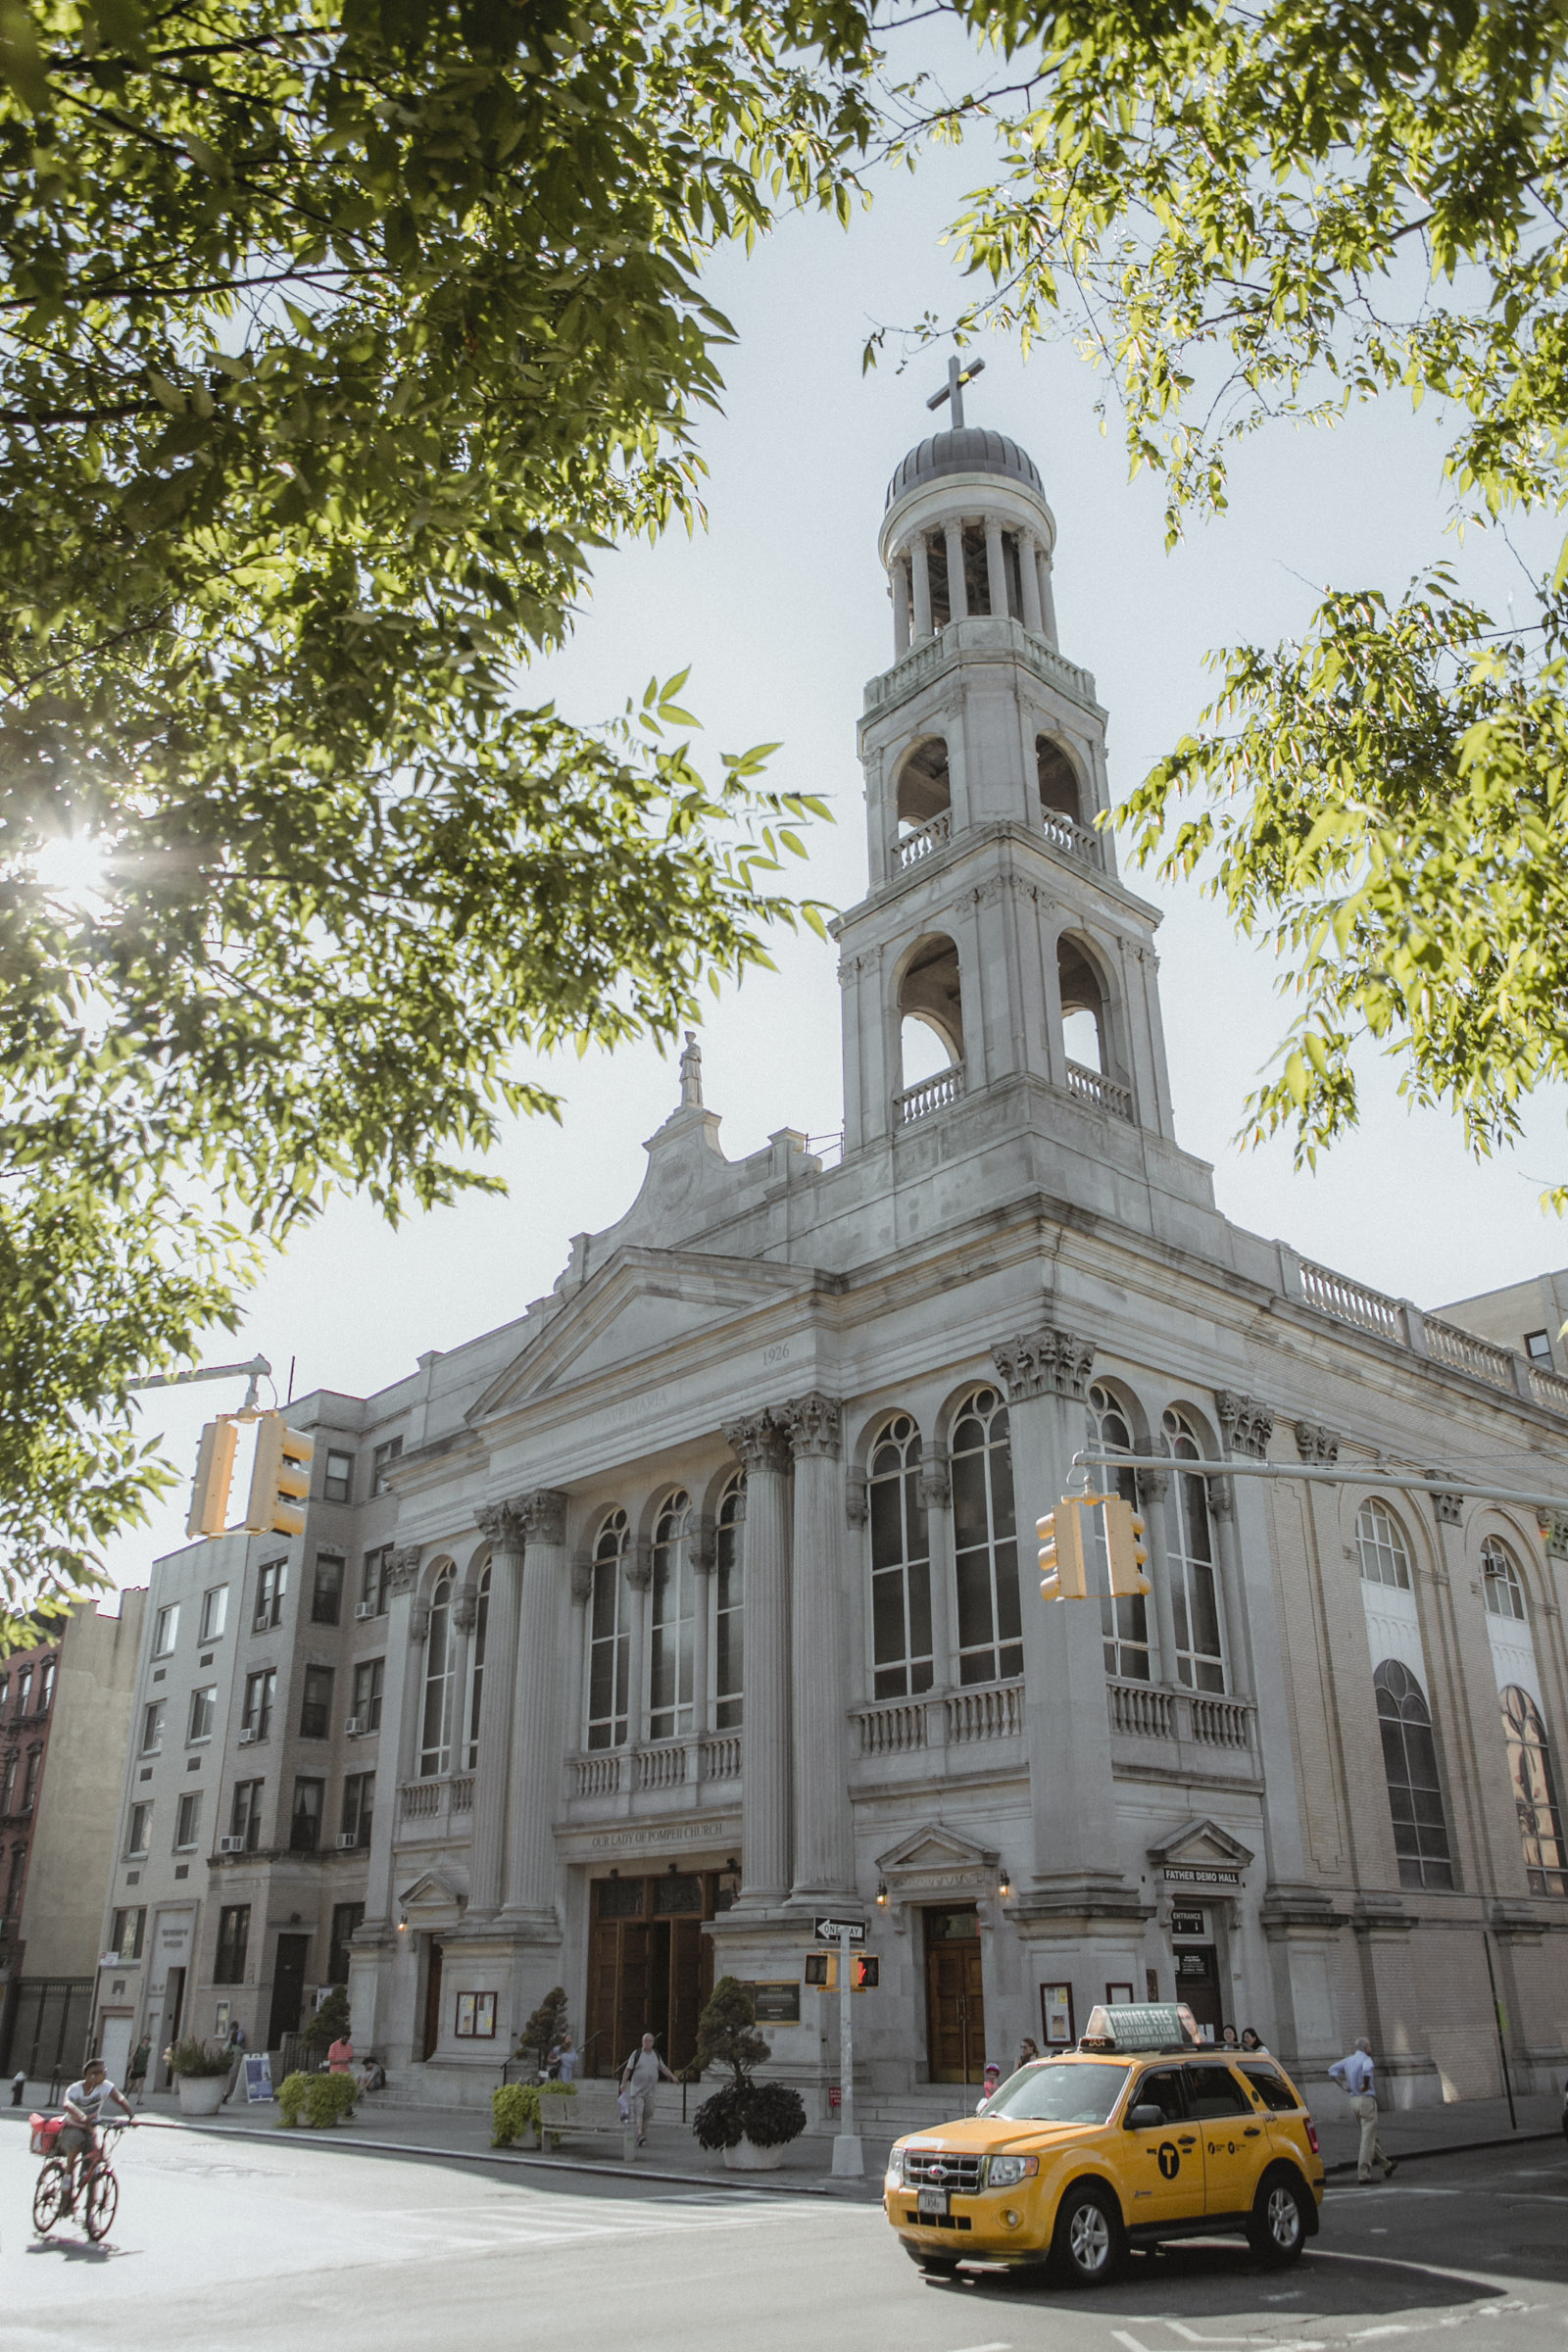 Exterior view of NYC church on a warm, August day| Our Lady of Pompeii wedding | Manhattan wedding | Bronx Wedding | Cathy & Antonello's wedding | Amy Sims Photography